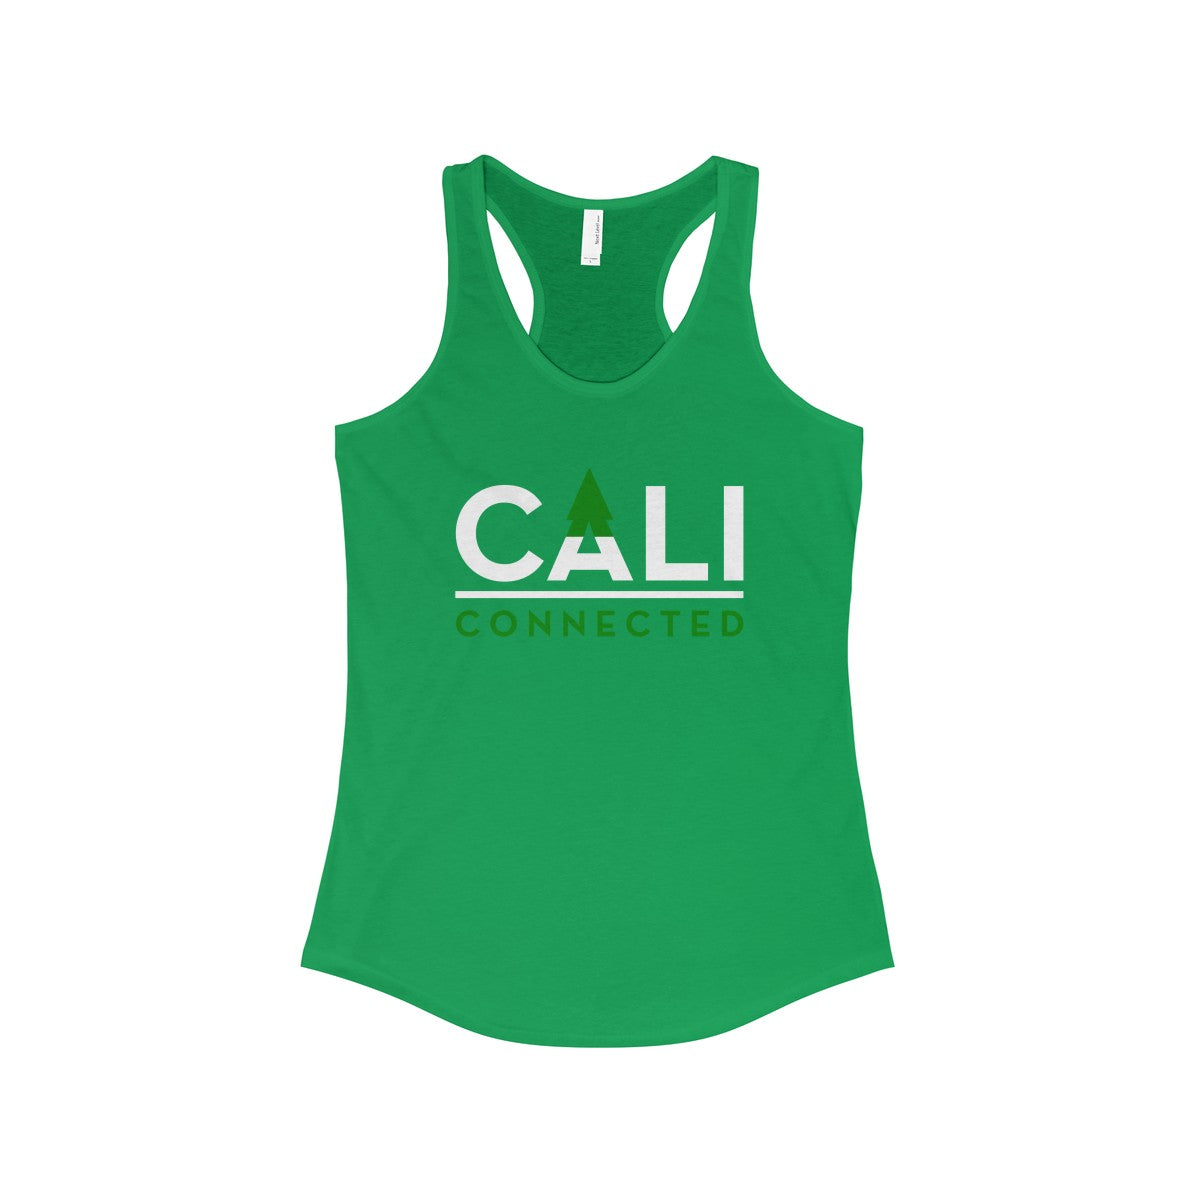 CaliConnected Women's Slim Fit Green Racerback Tank